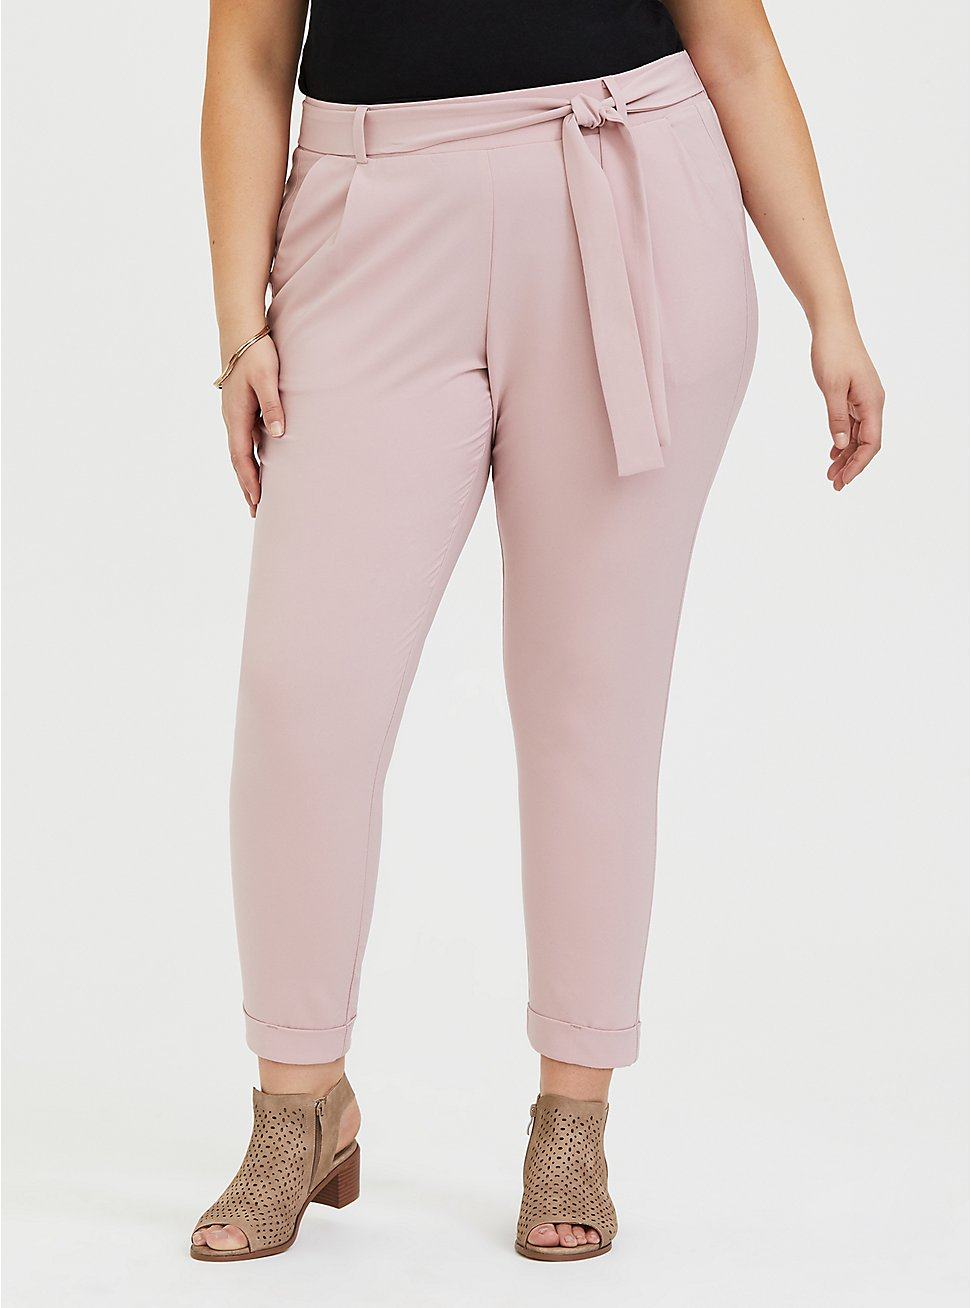 Mauve Pink Crepe Self Tie Tapered Pant, PALE MAUVE, hi-res